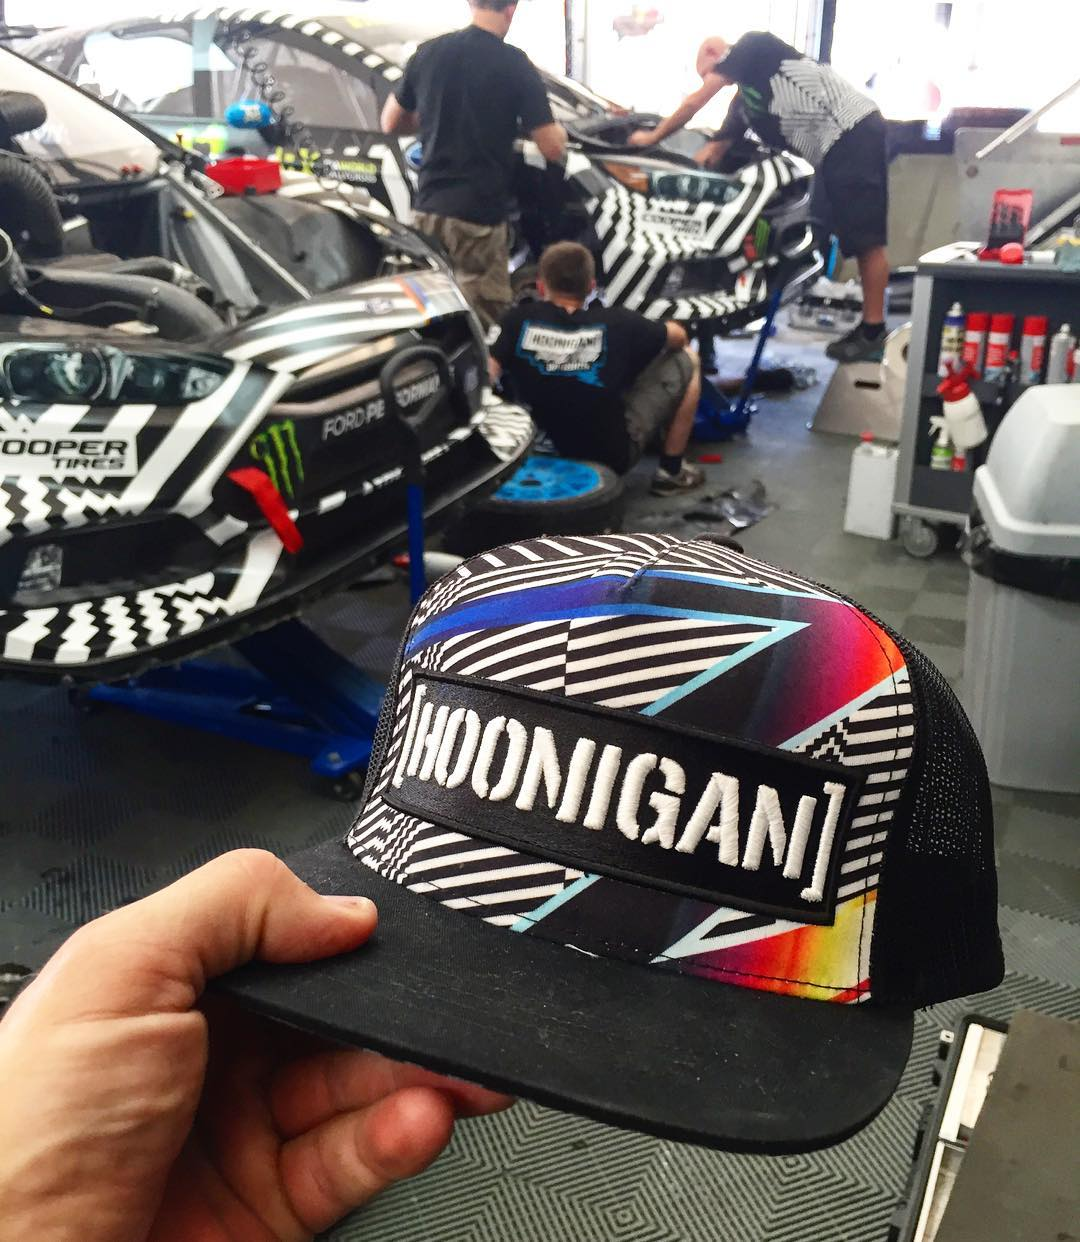 Current favorite hat from @TheHoonigans. Running this one on the daily. @FelipePantone #HooniganRacingbyFelipePantone